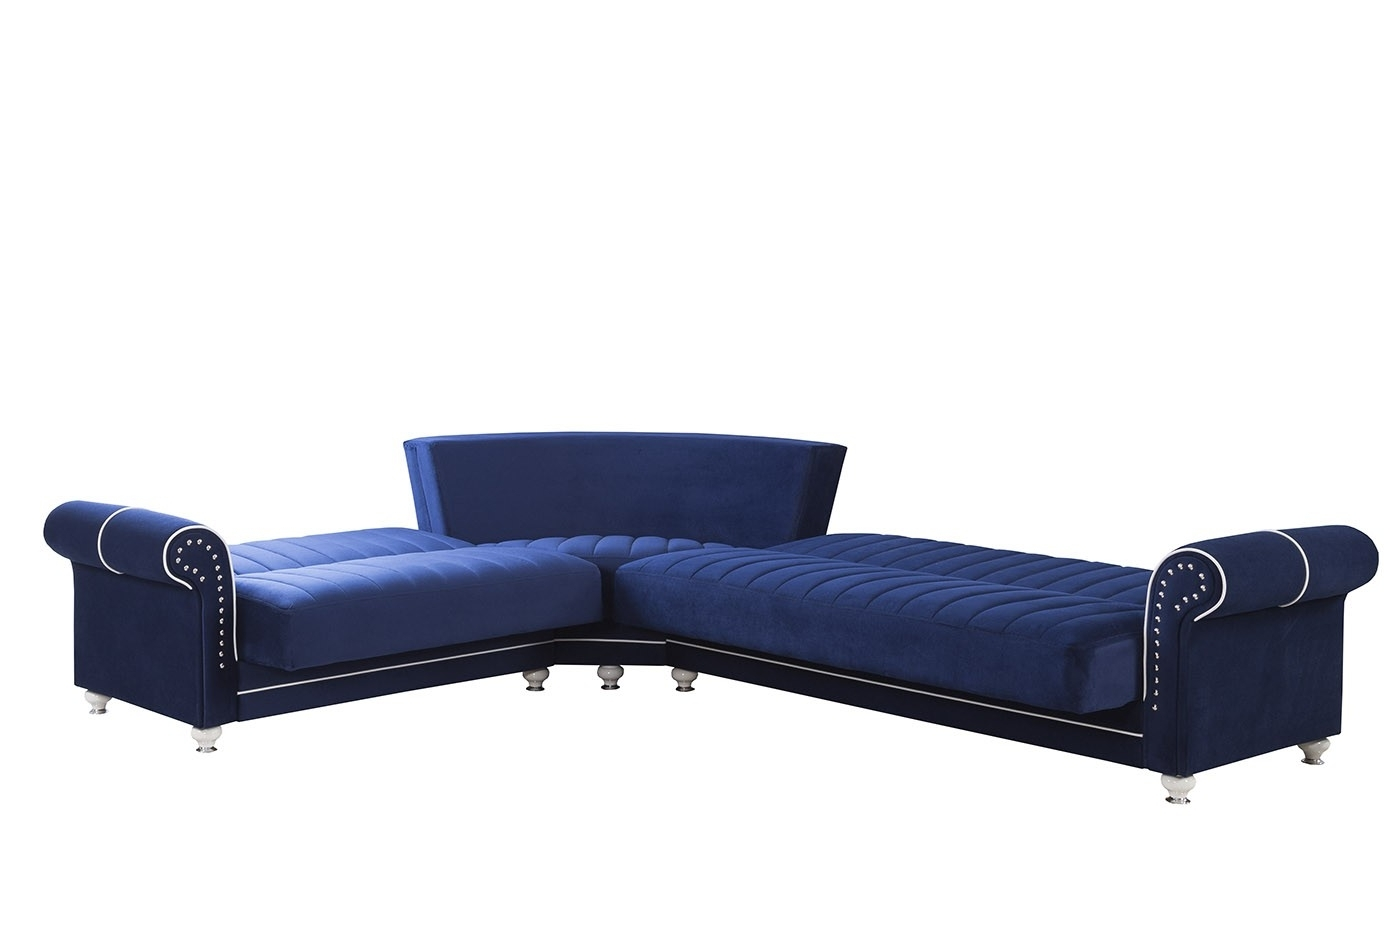 Fashionable Royal Home Sectional Sofa, Riva Dark Blue Buy Online At Best Price Throughout Royal Furniture Sectional Sofas (View 4 of 15)